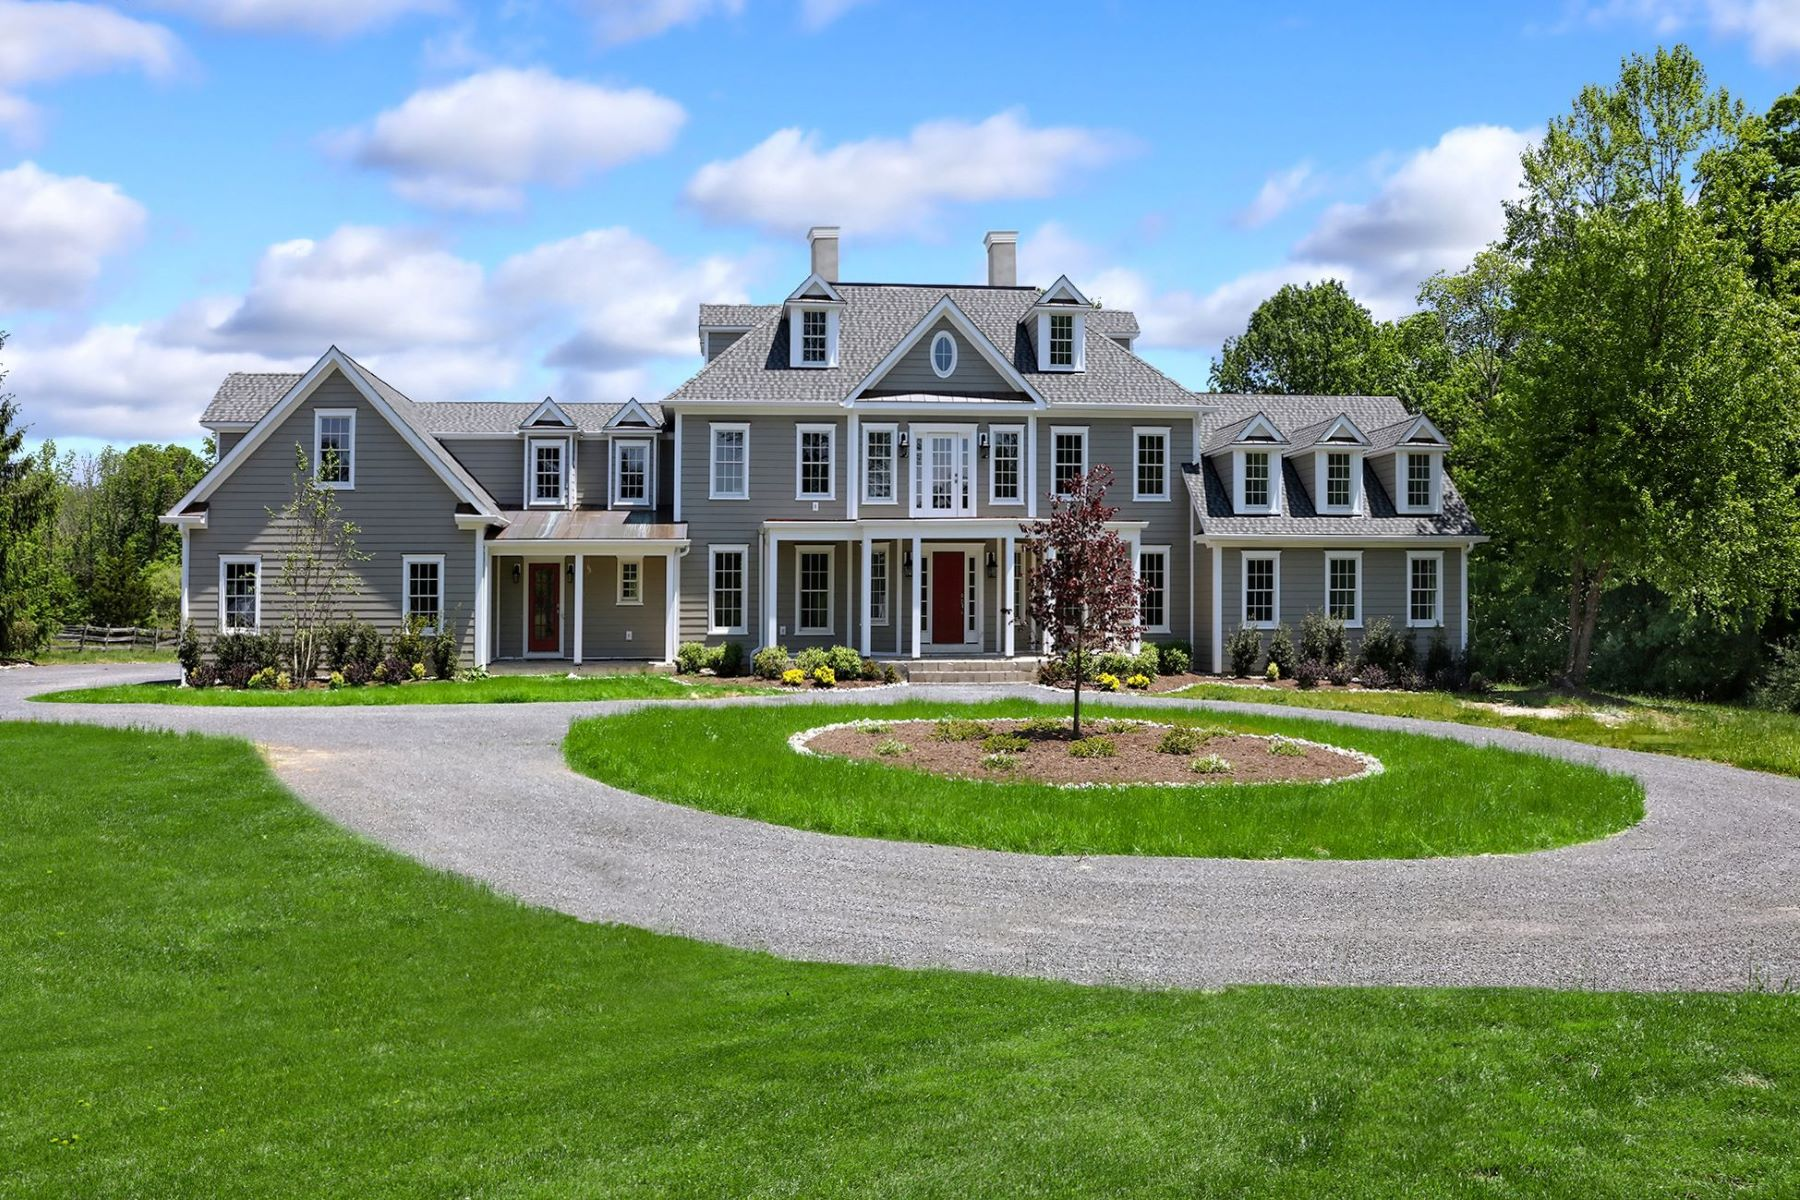 Single Family Homes için Satış at Every Amenity in this Spectacular Estate-Style Home 114 Federal Twist Road, Stockton, New Jersey 08559 Amerika Birleşik Devletleri